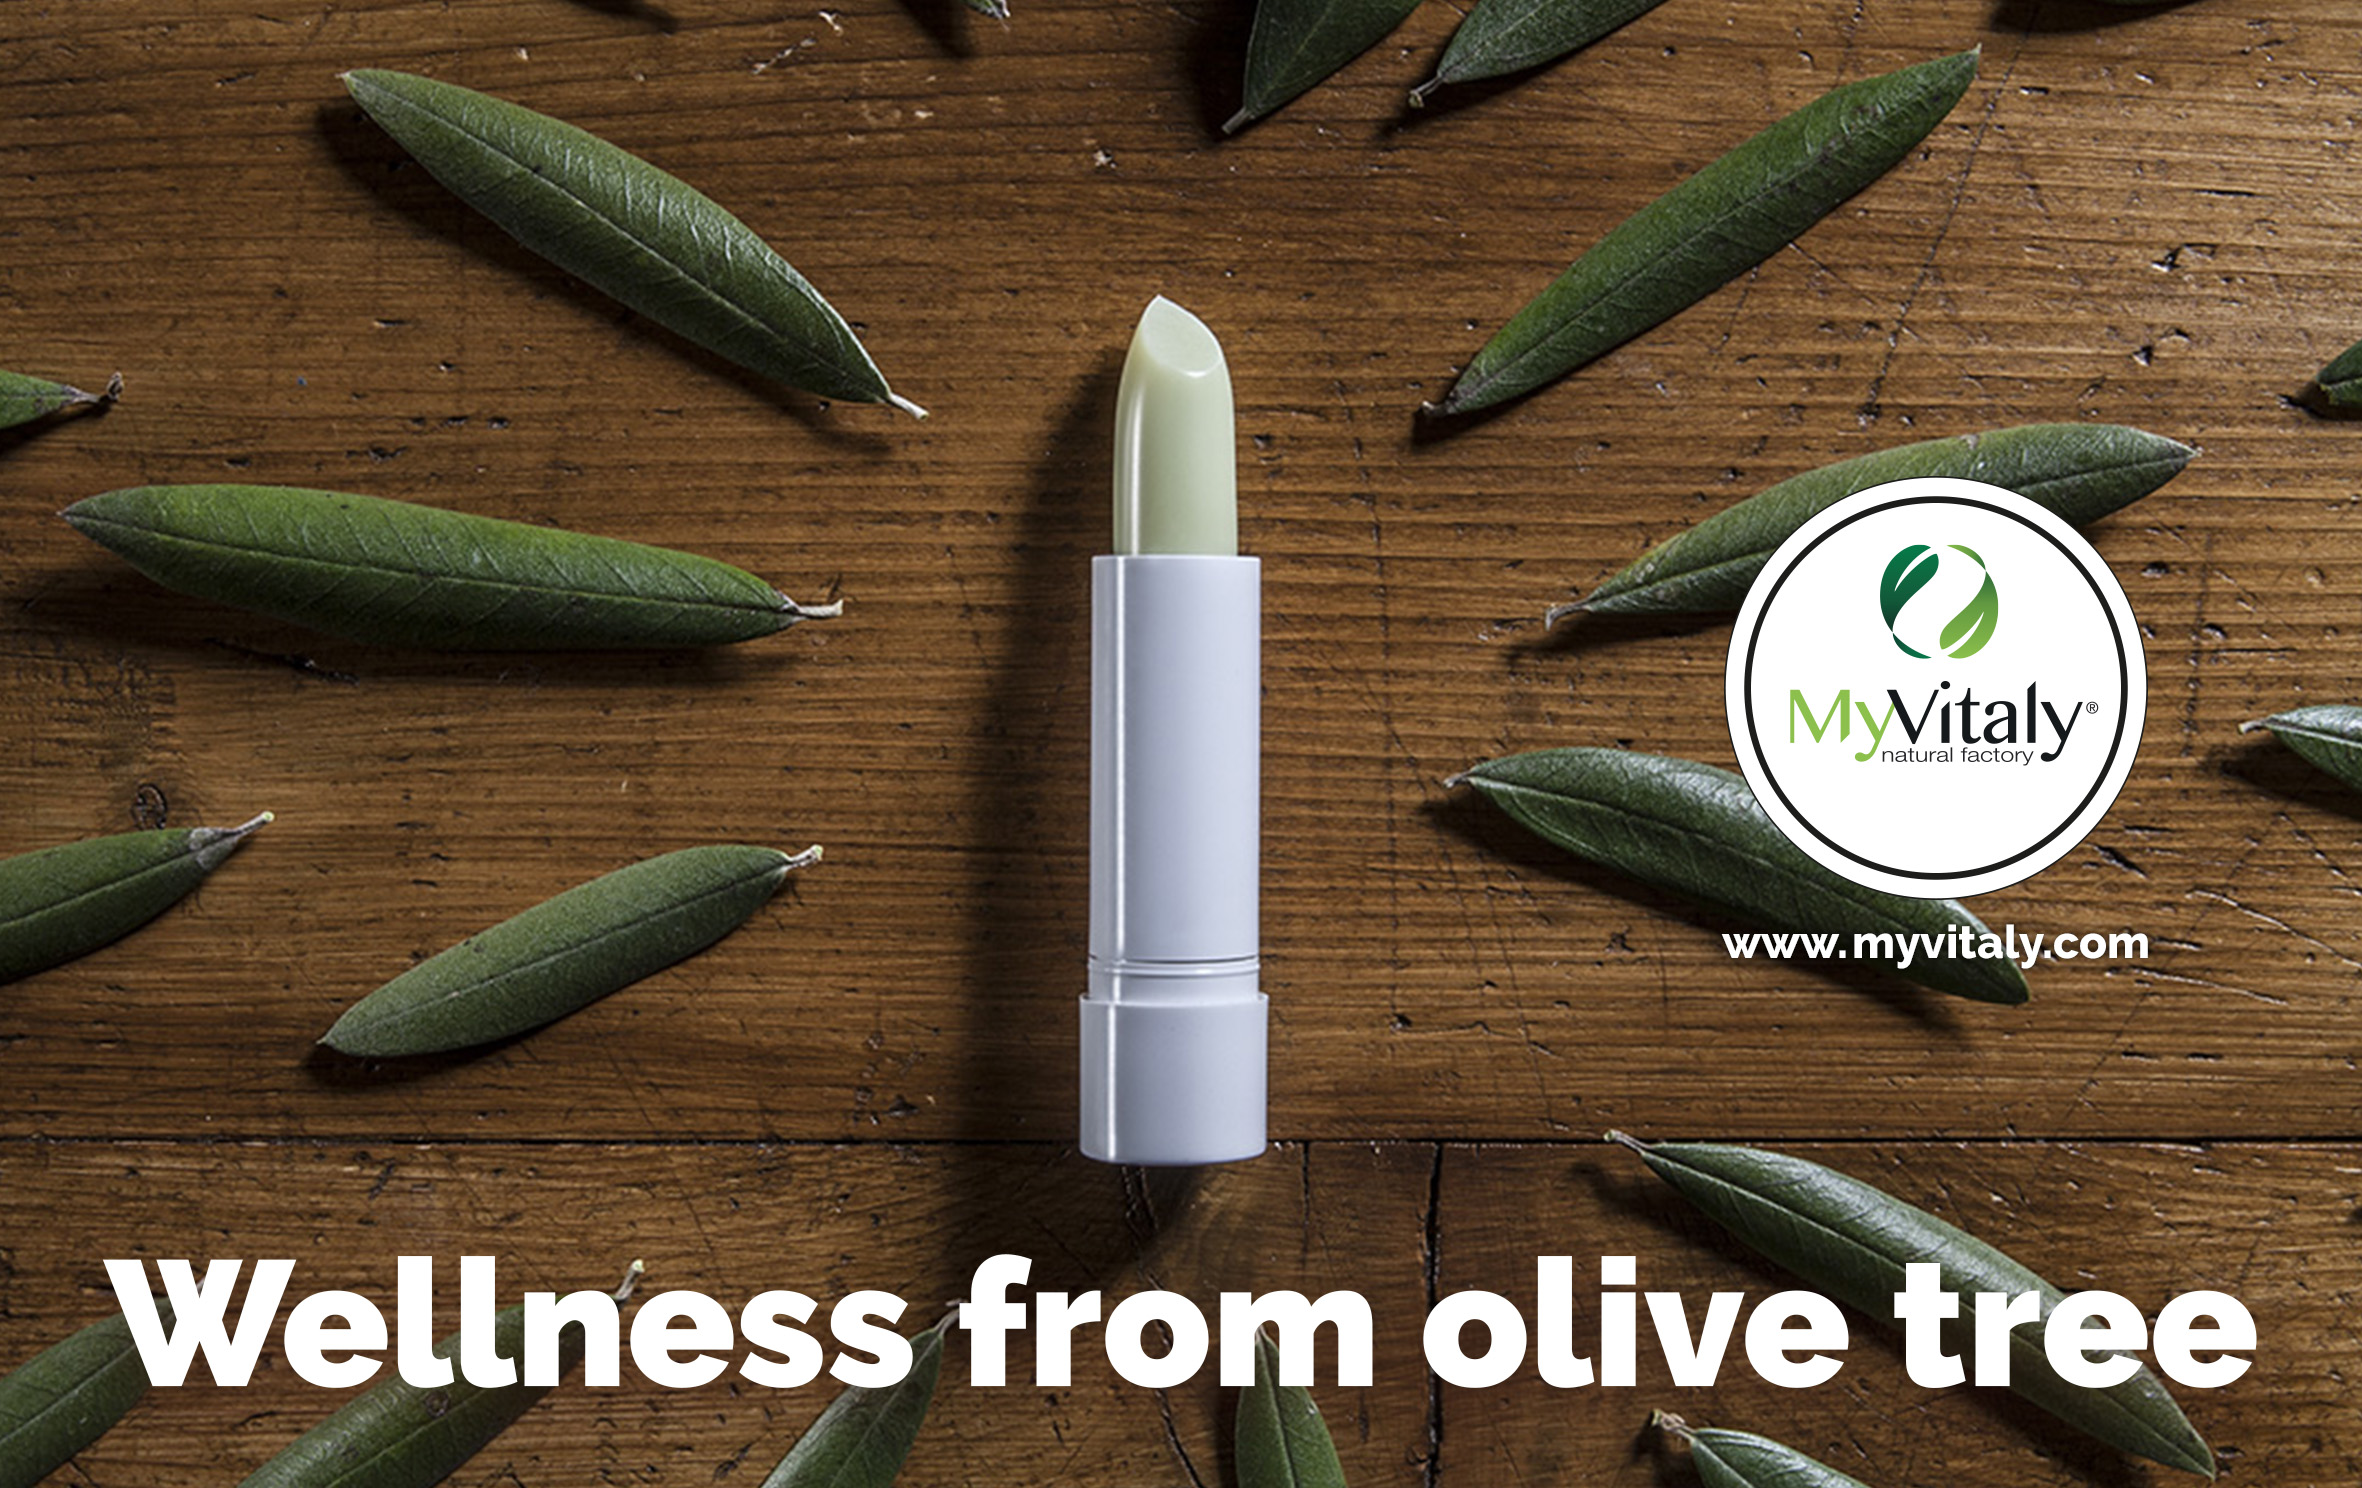 Beauty_Care_Olive_Oil_Facebook2_EN